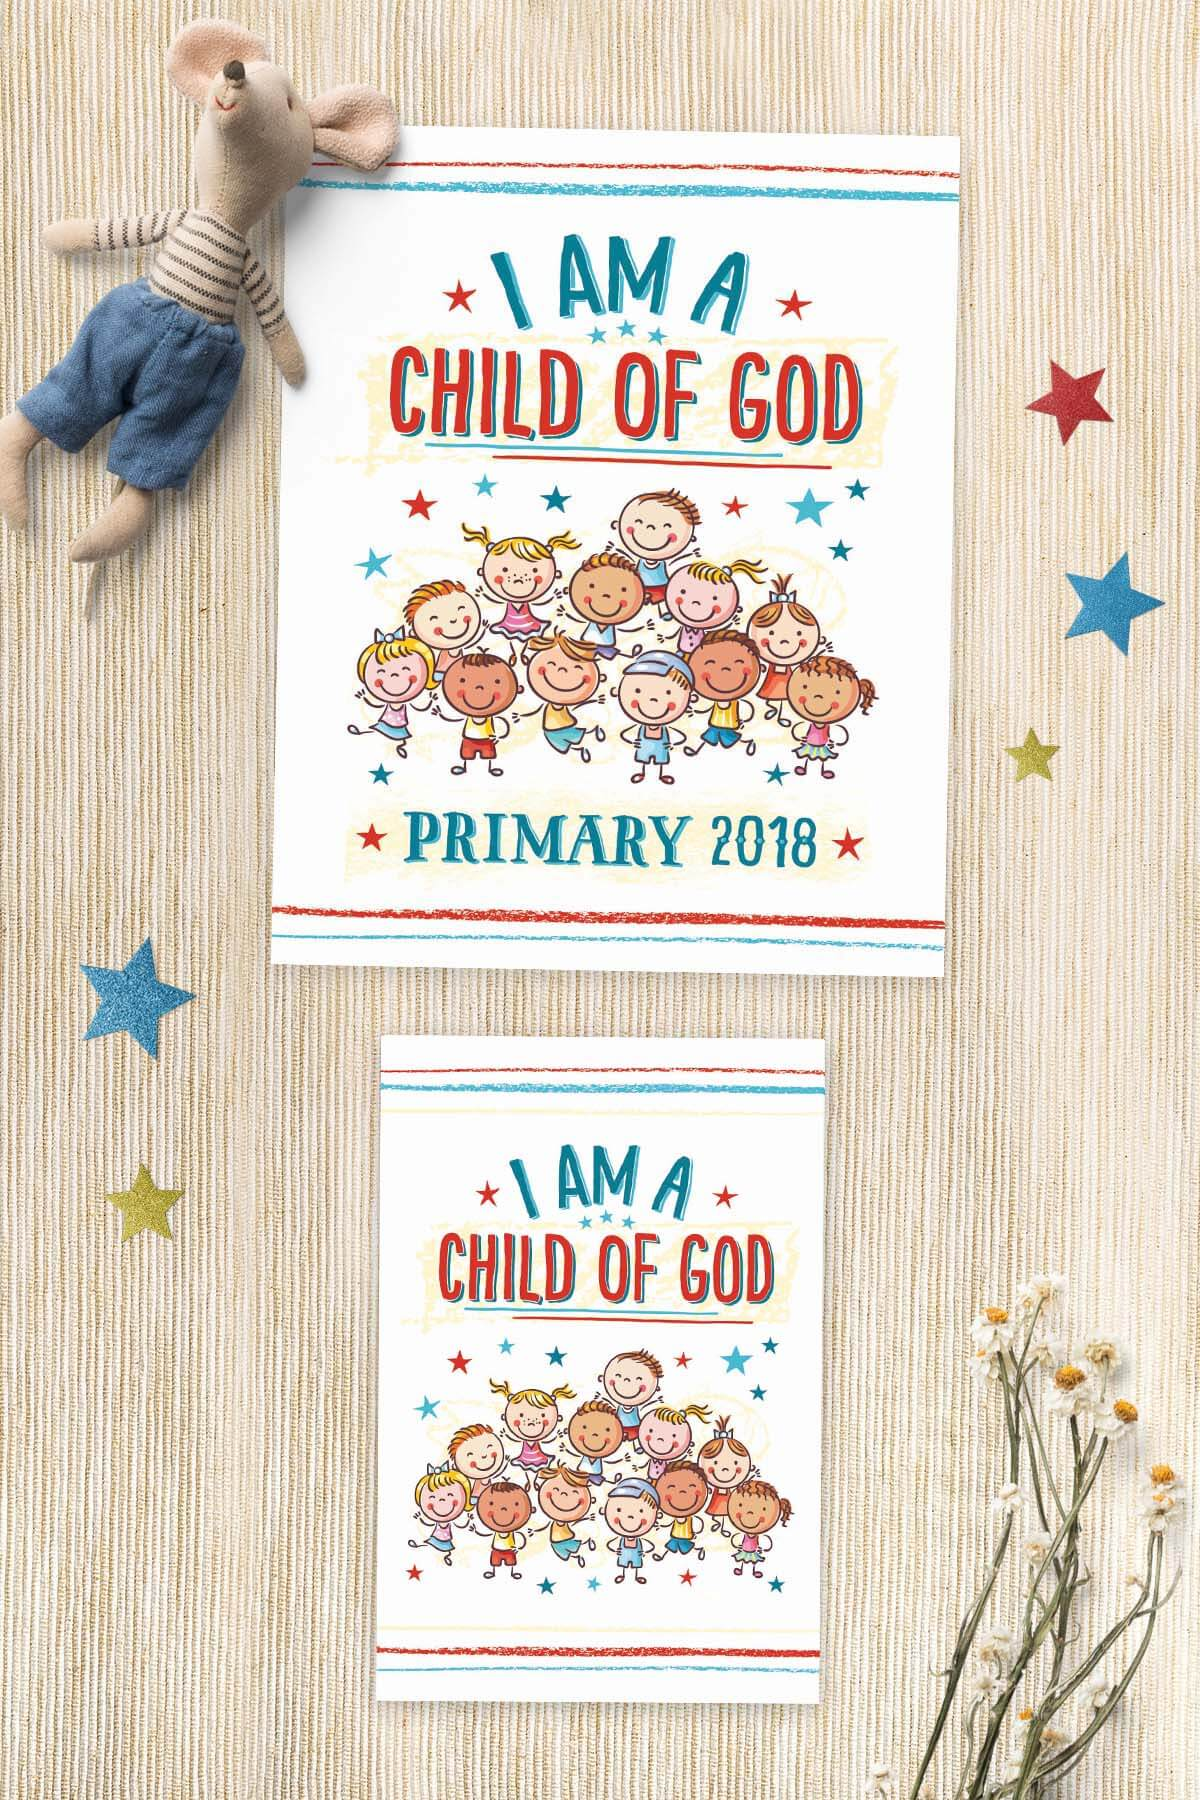 These Free Primary 2018 I Am A Child Of God Printables Are Perfect For Gifts